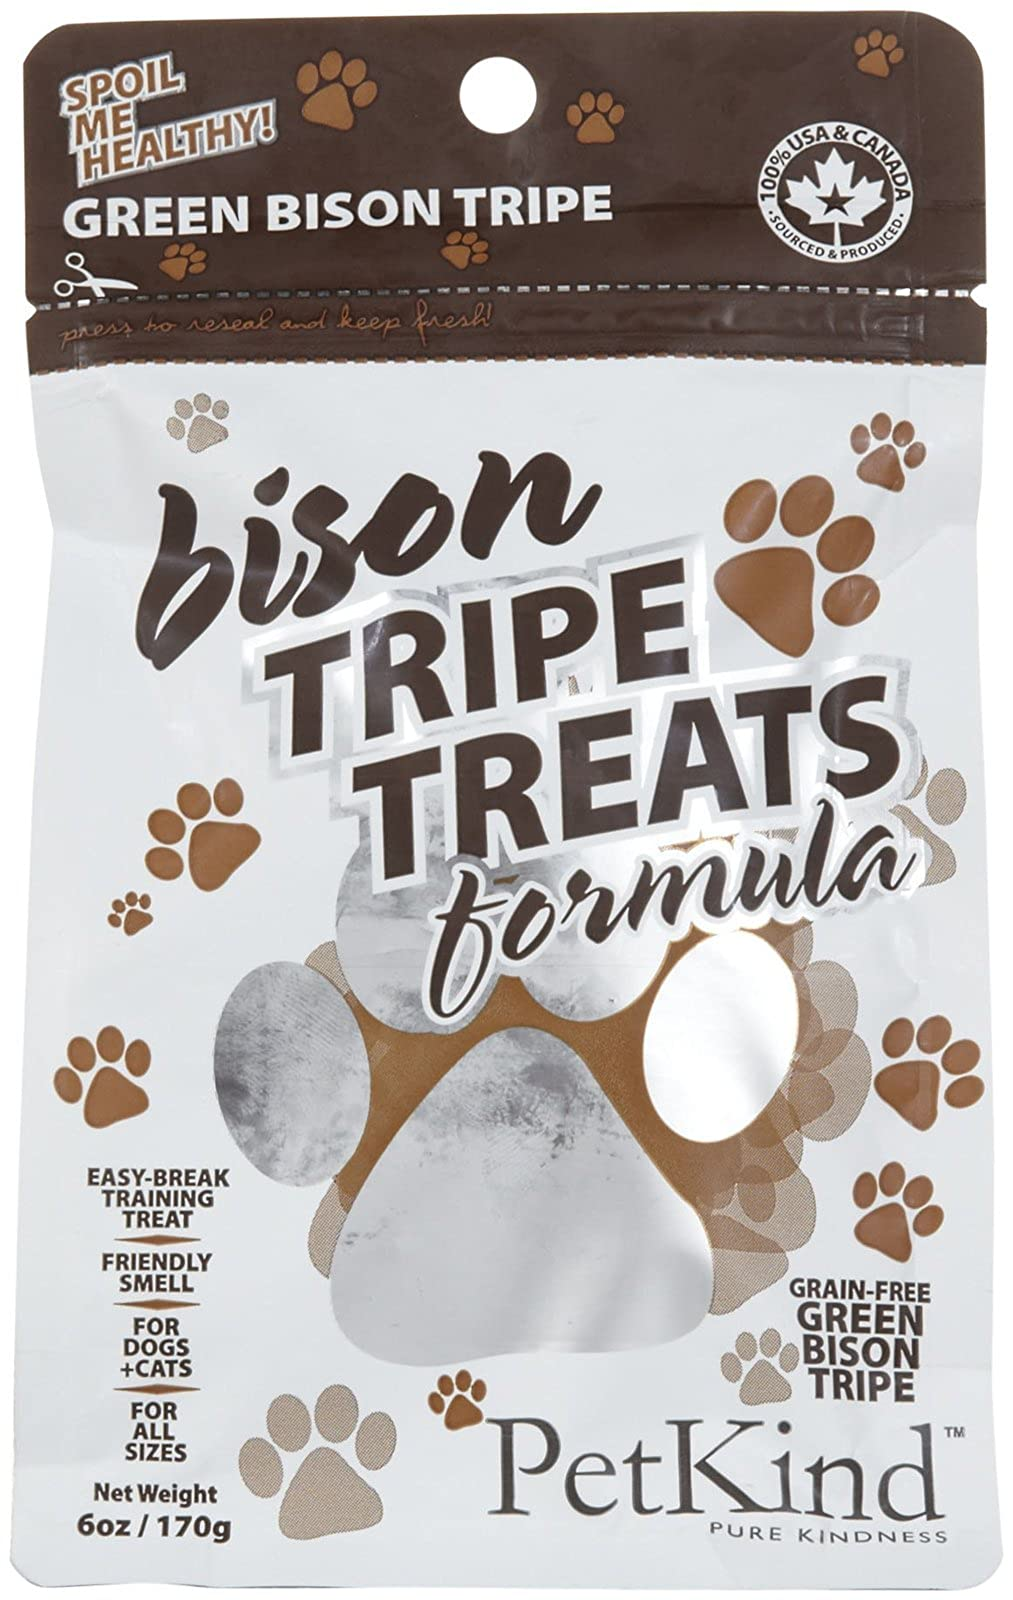 Petkind Green Bison Tripe Treats For Dogs 6 Oz - 1